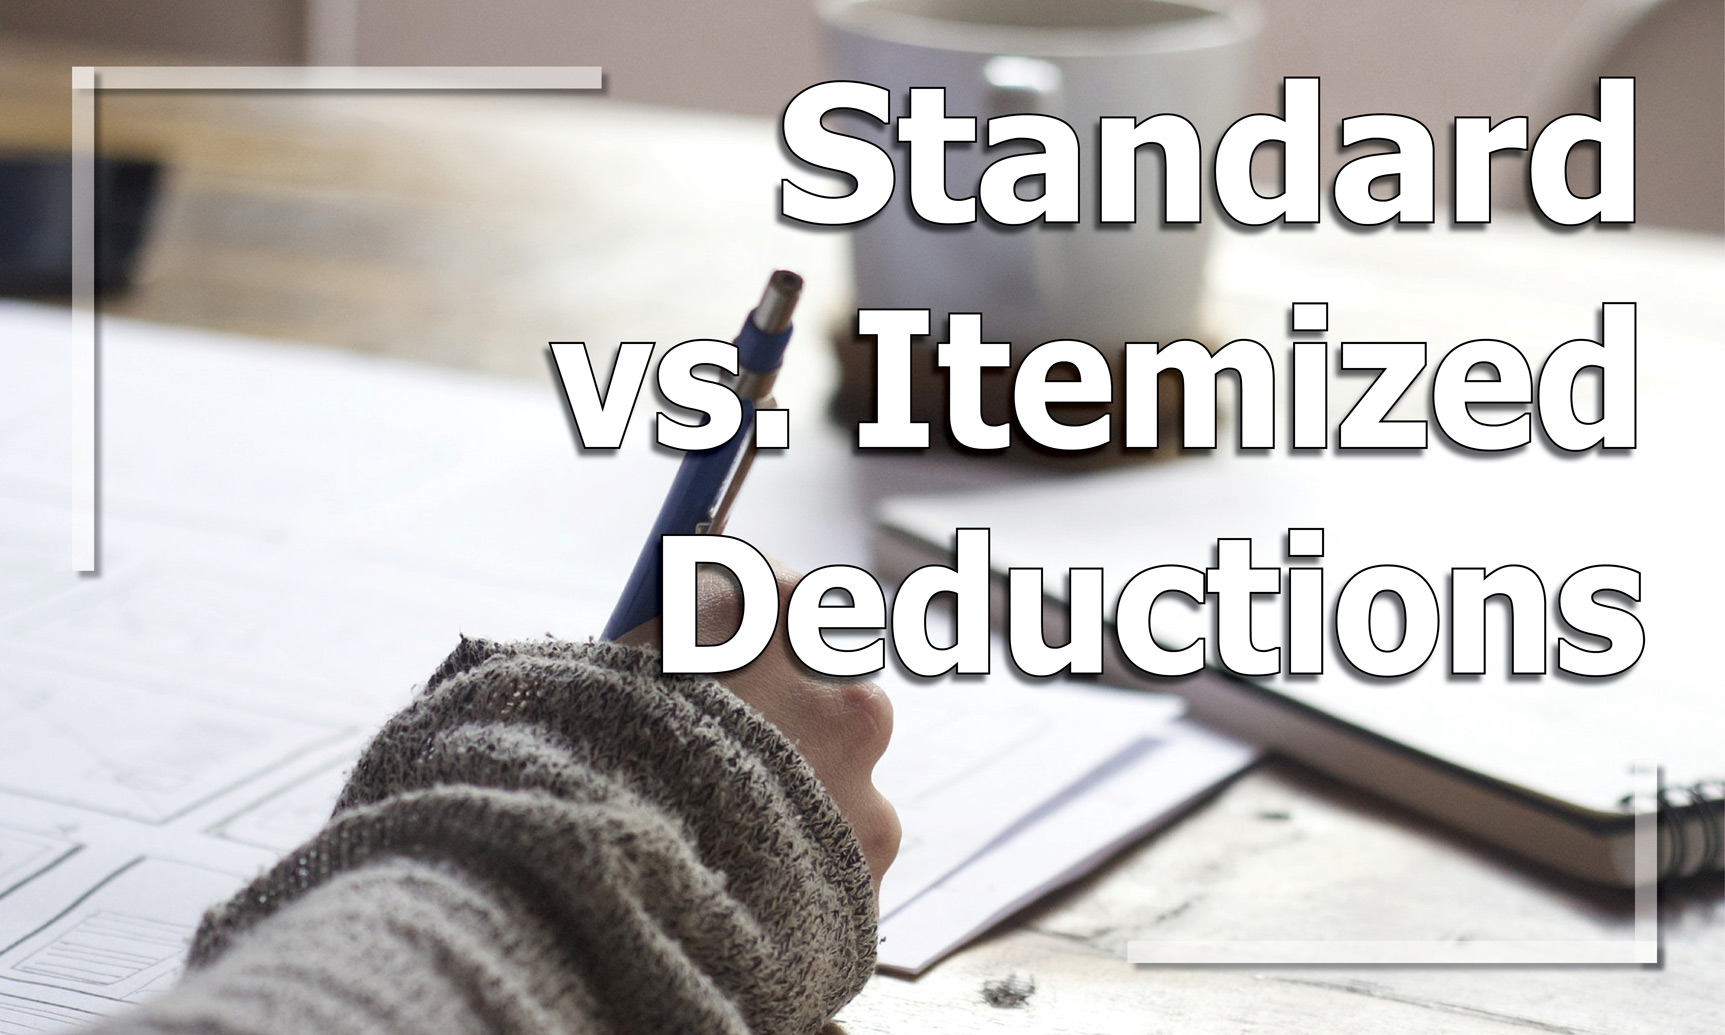 Standard and Itemized Deductions